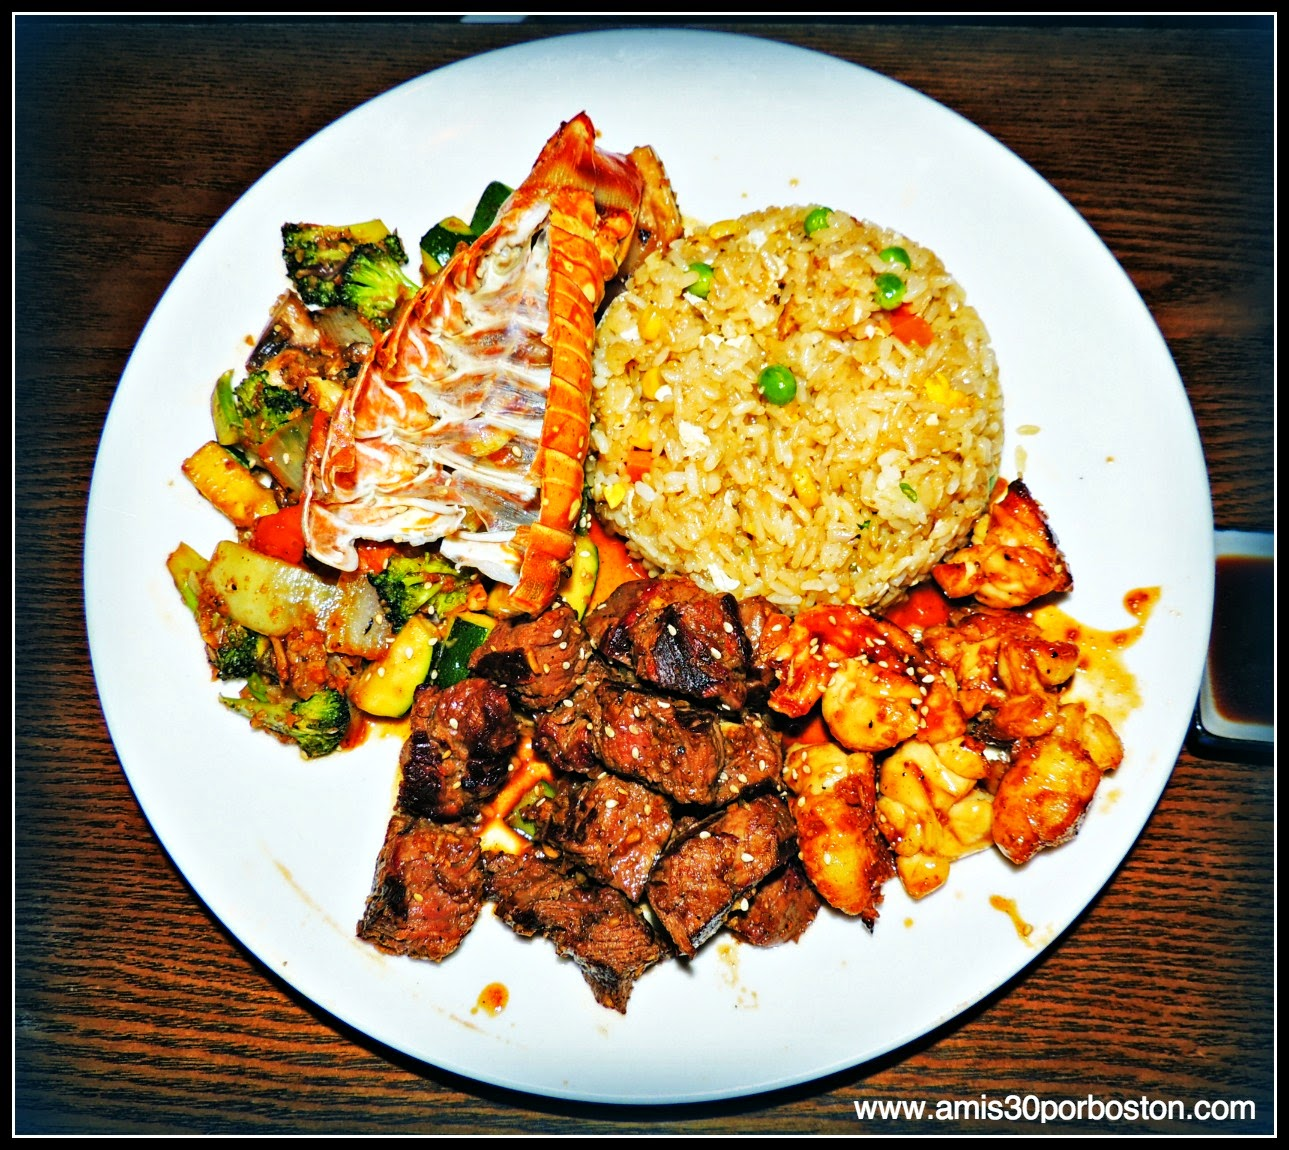 Hibachi Filet Mignon and Lobster tail